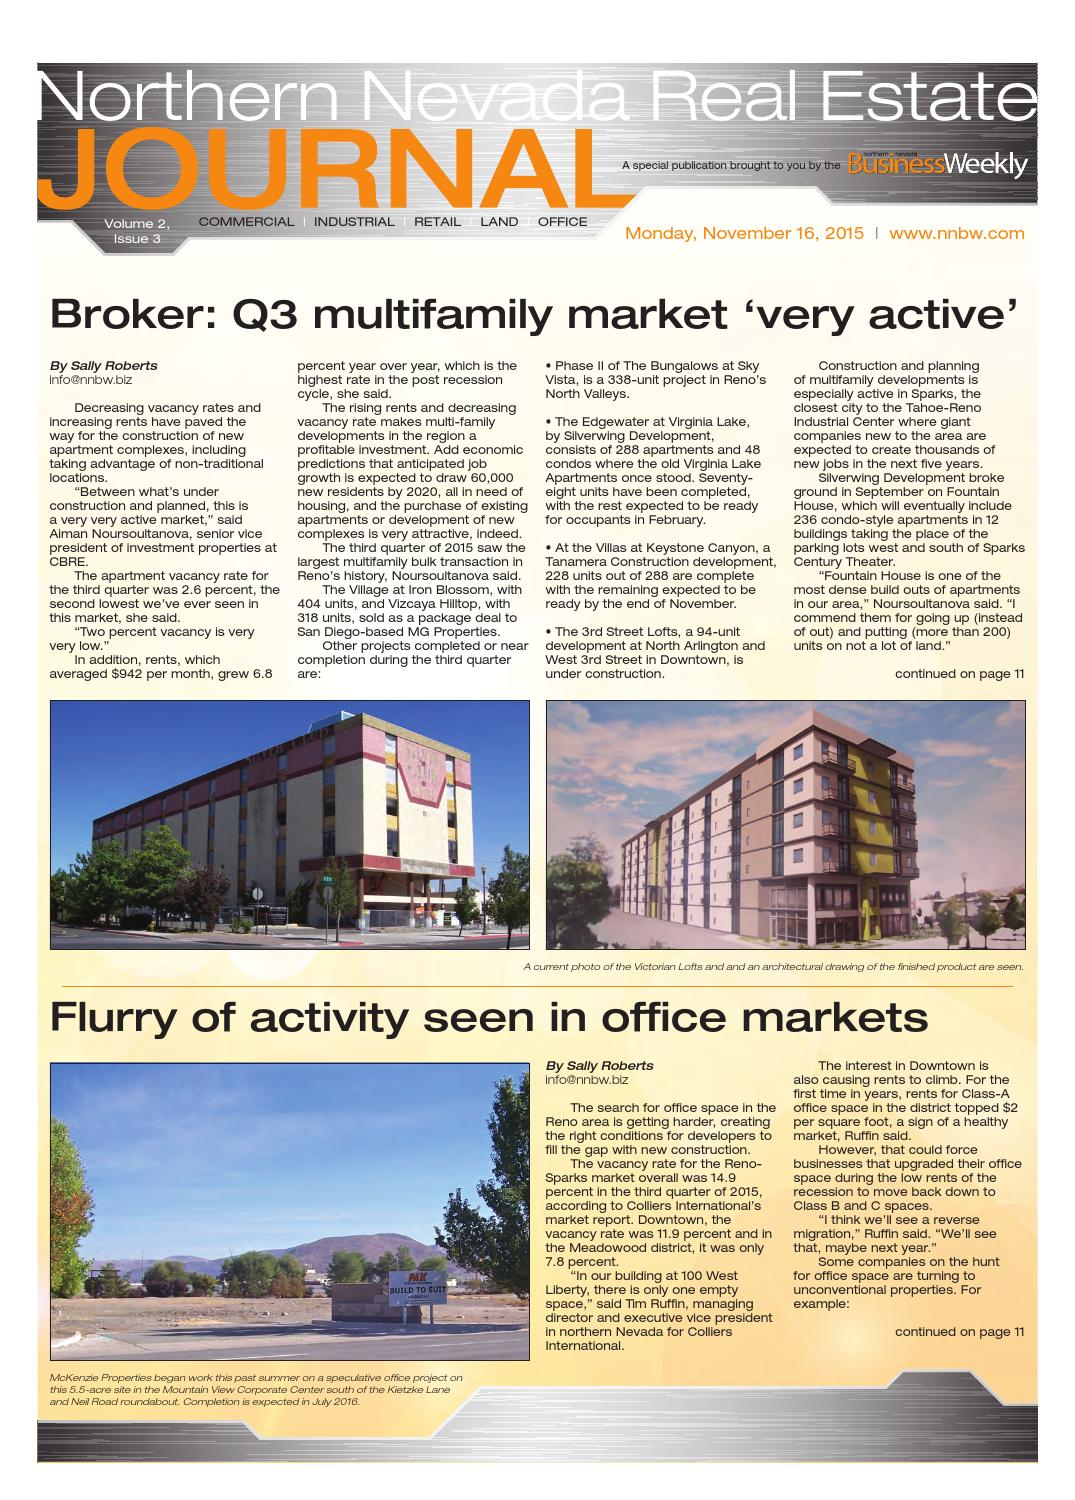 Northern Nevada Real Estate Journal Vol  2 Issue 3 by SNMG